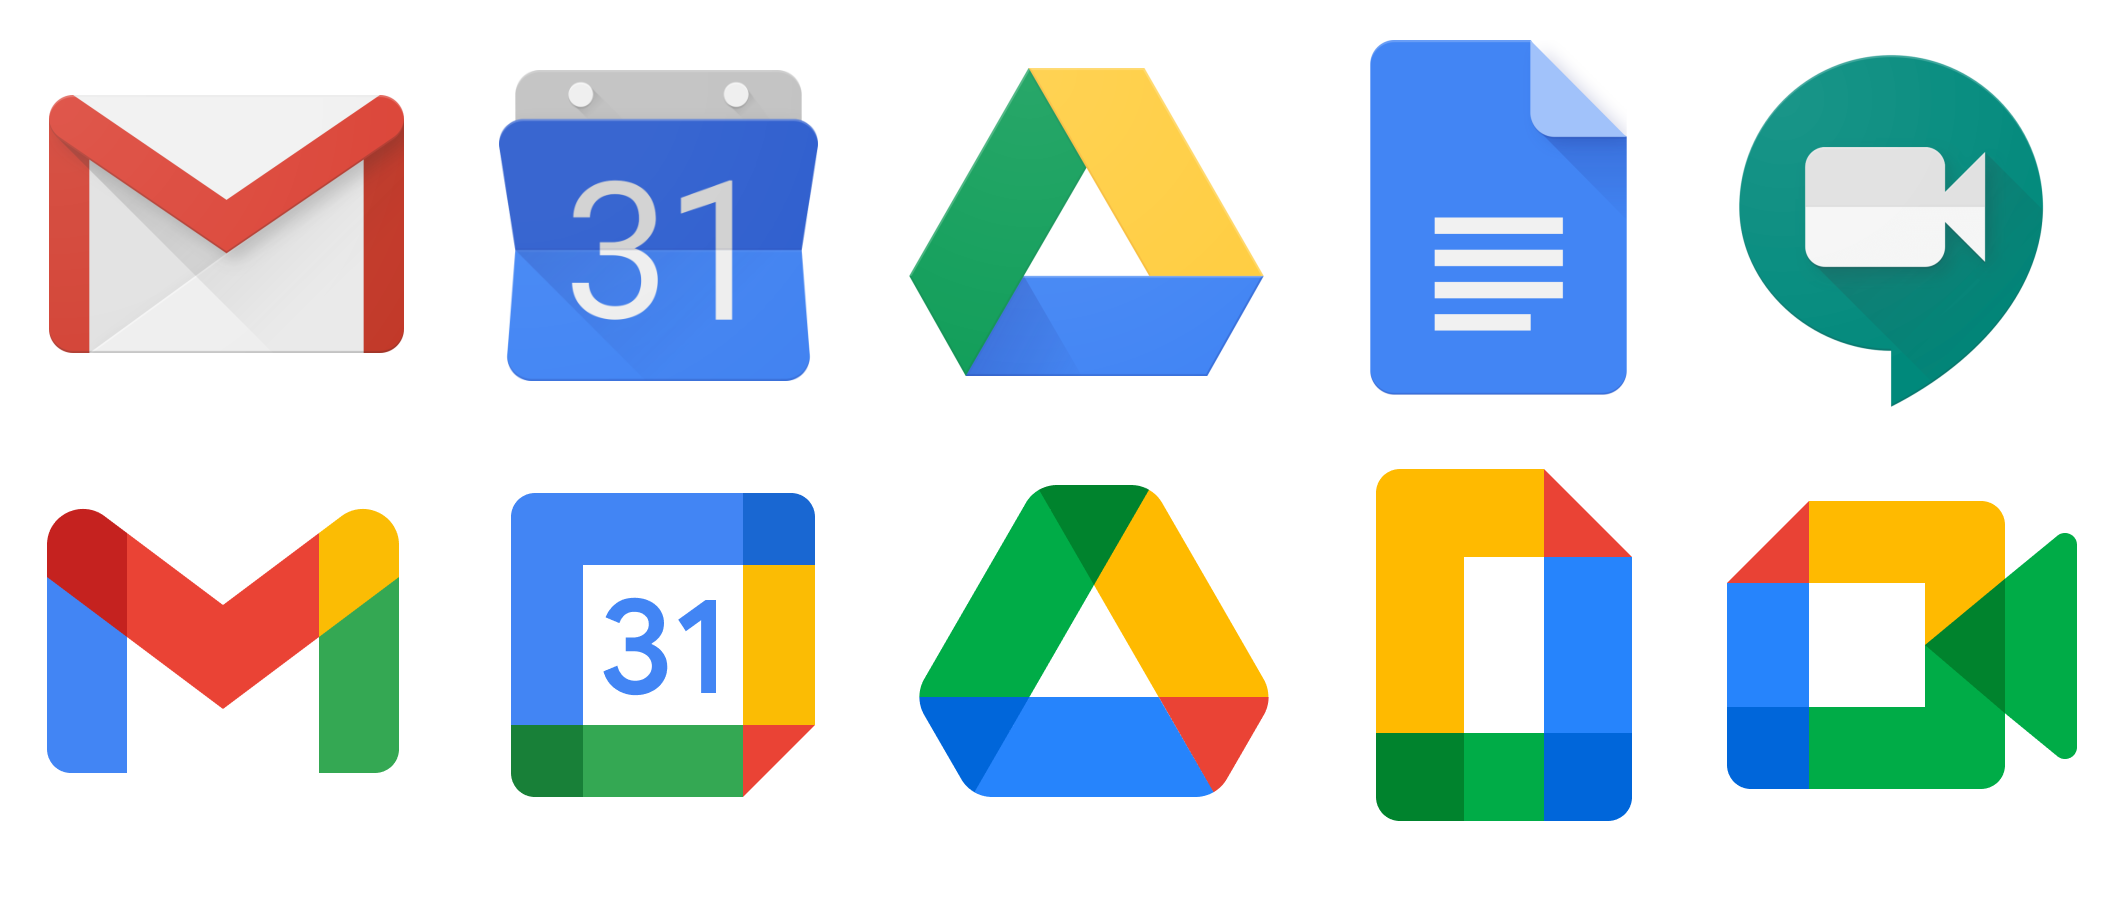 A fun assignment would be to fix up Google's icon designs - Credits: TechCrunch